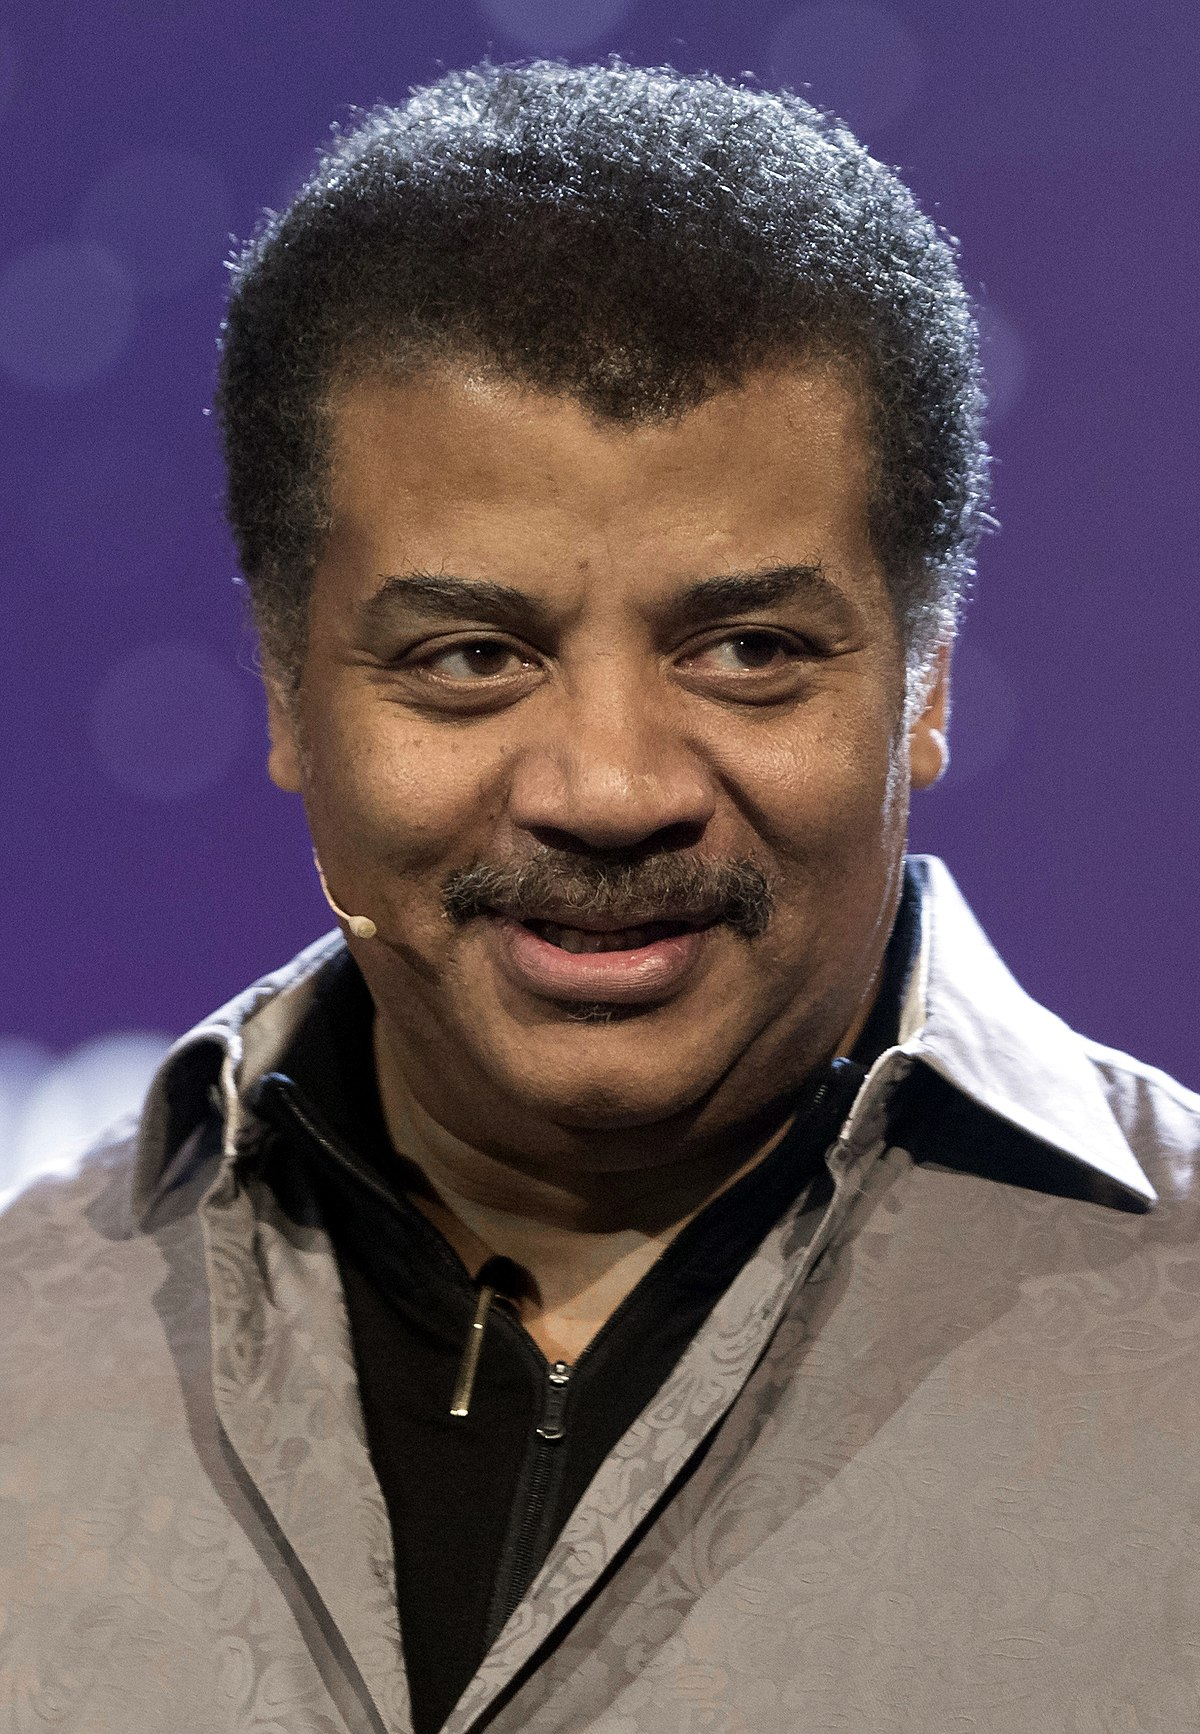 Neil Degrasse Tyson Wikipedia